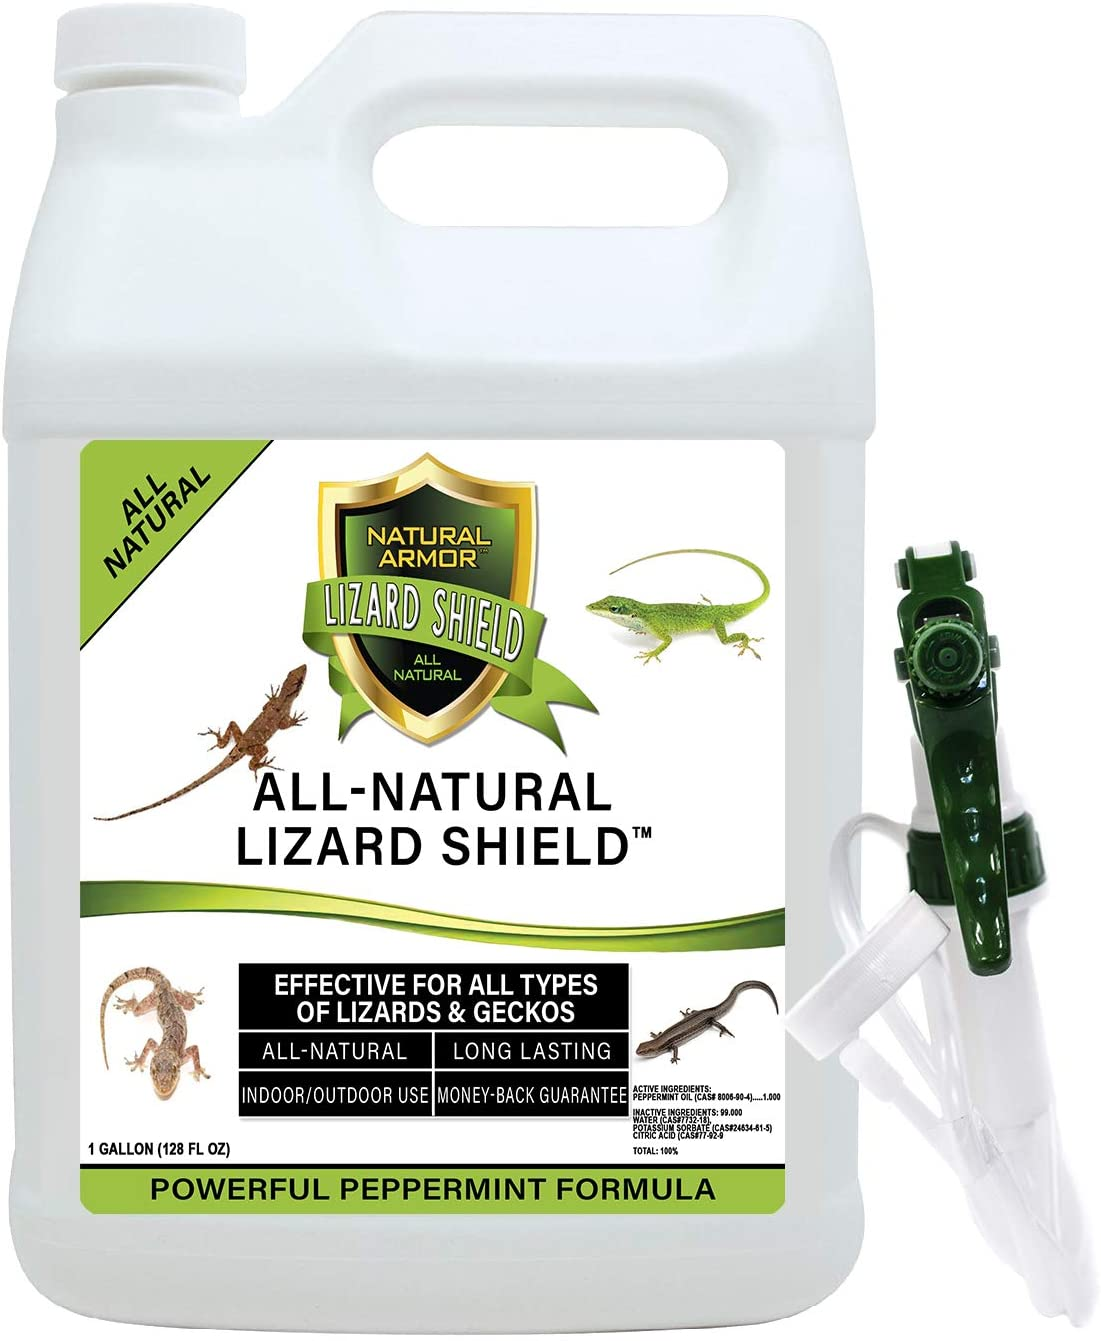 Natural Armor Lizard & Gecko Repellent Spray - Powerful Peppermint Formulation Repels All Types of Lizards & Geckos and Works Better Than Ultrasonic Gimmicks – 128 fl oz - Gallon Ready to Use